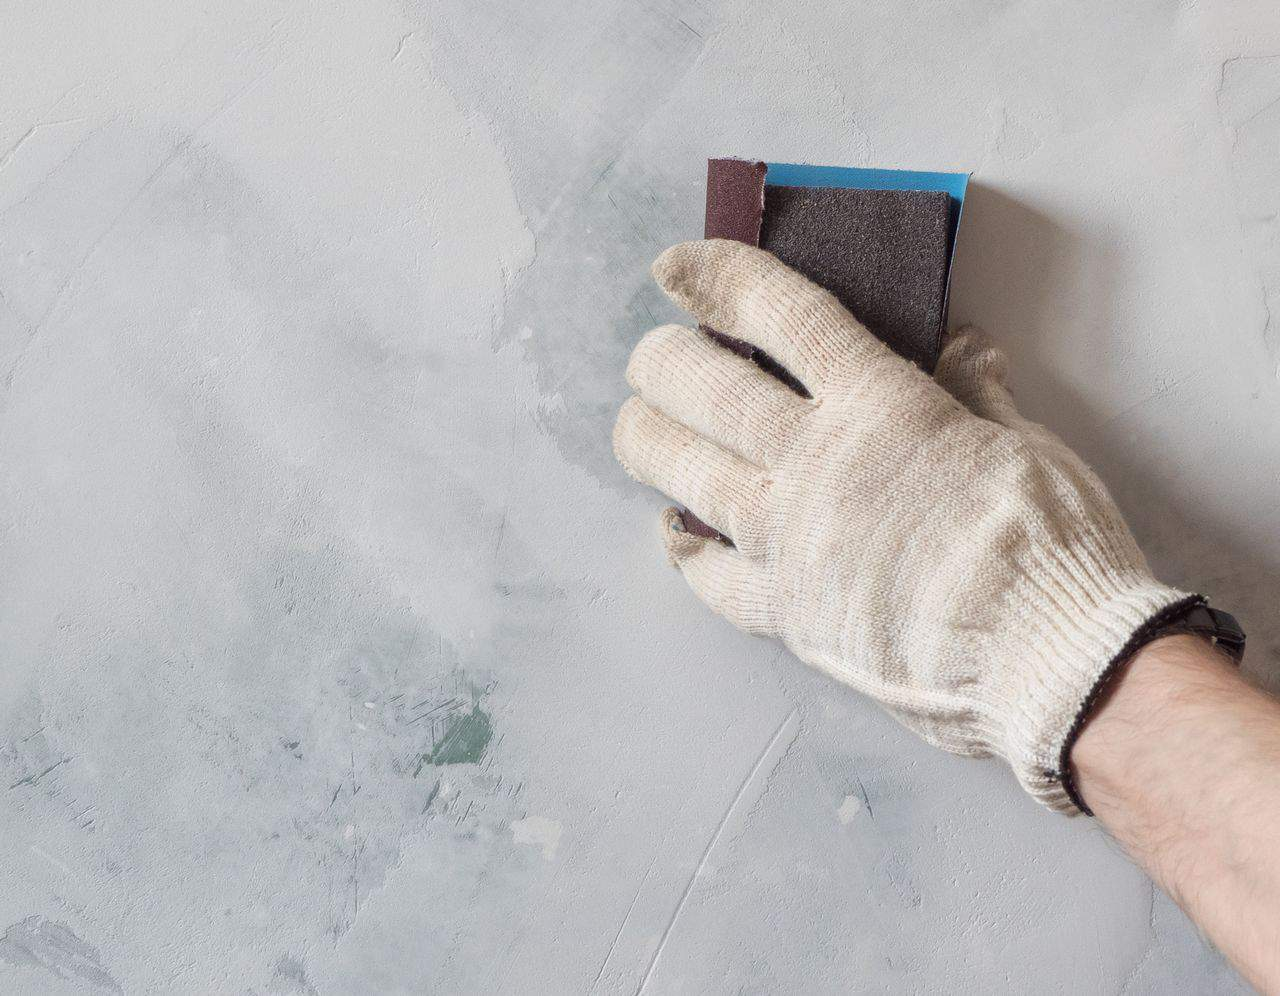 Sandpaper to fix a cracked wall